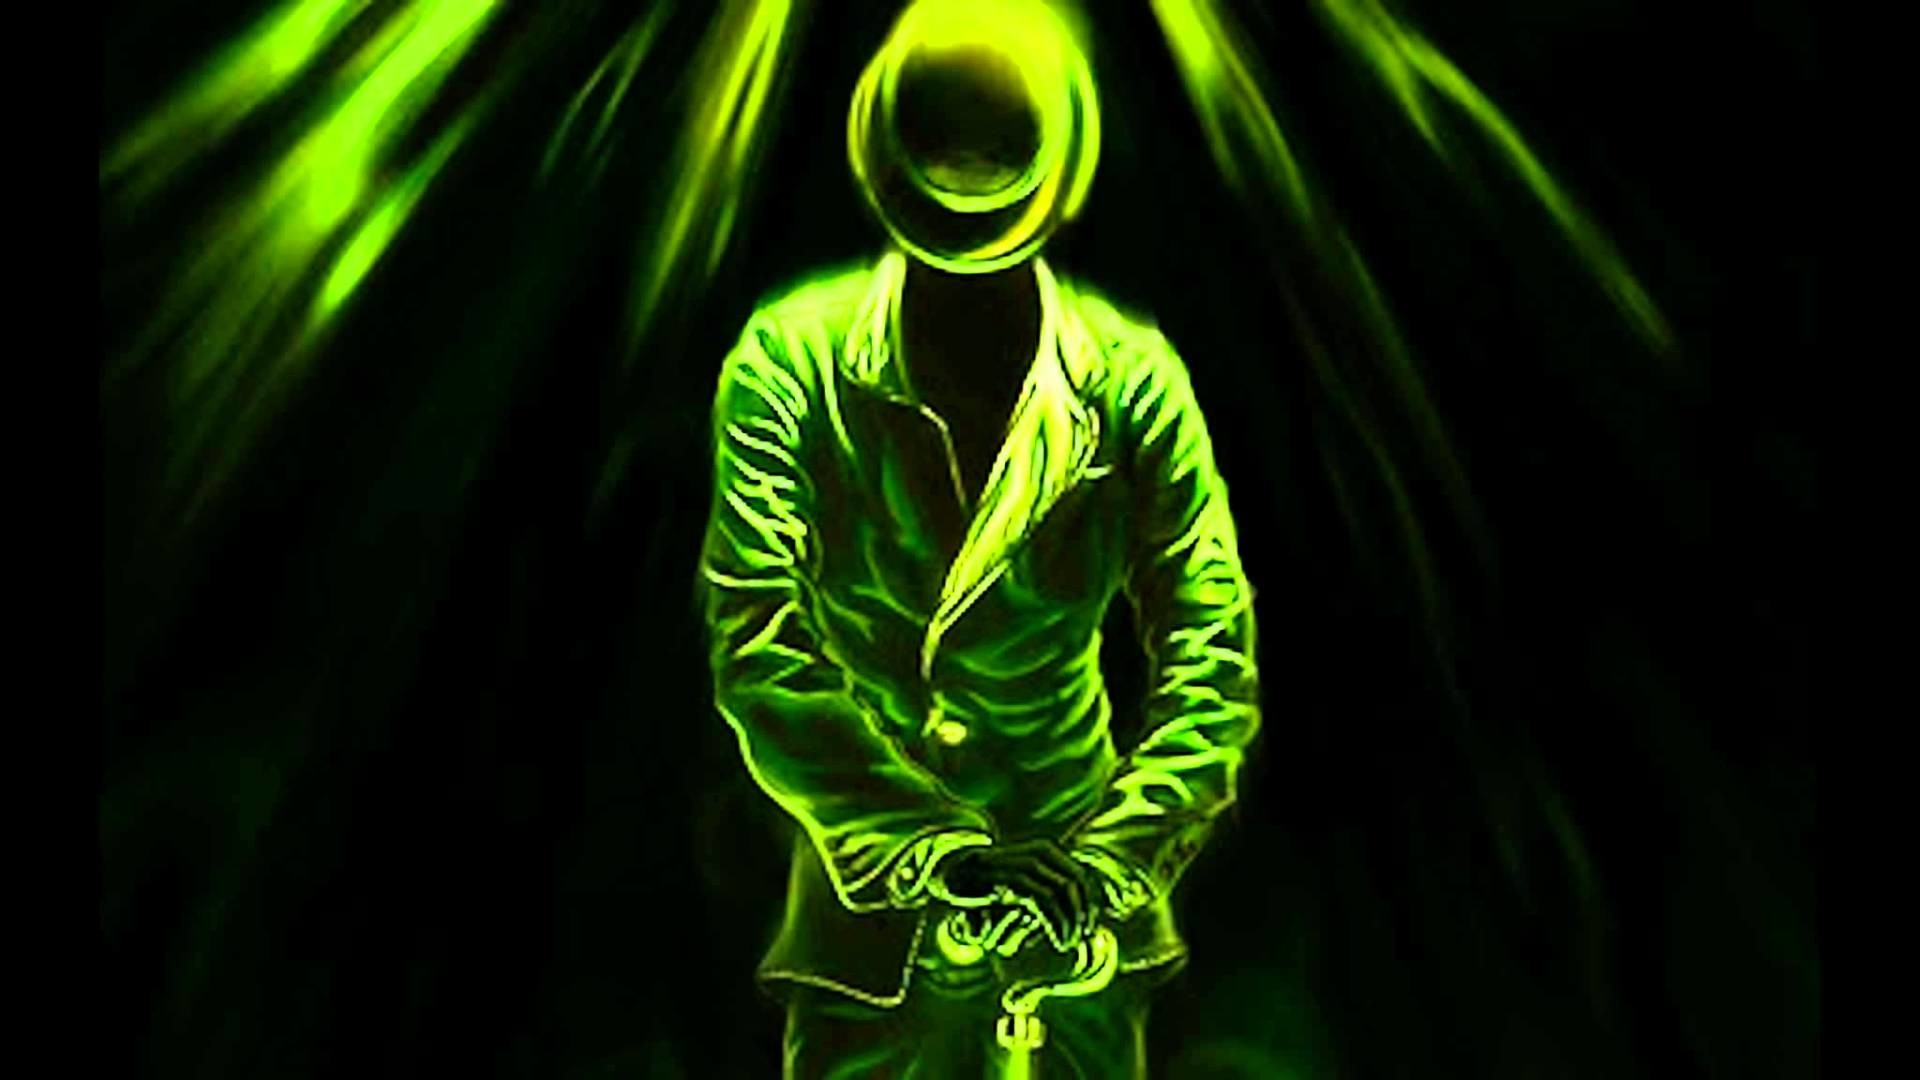 Wallpapers For > The Riddler Wallpaper Hd